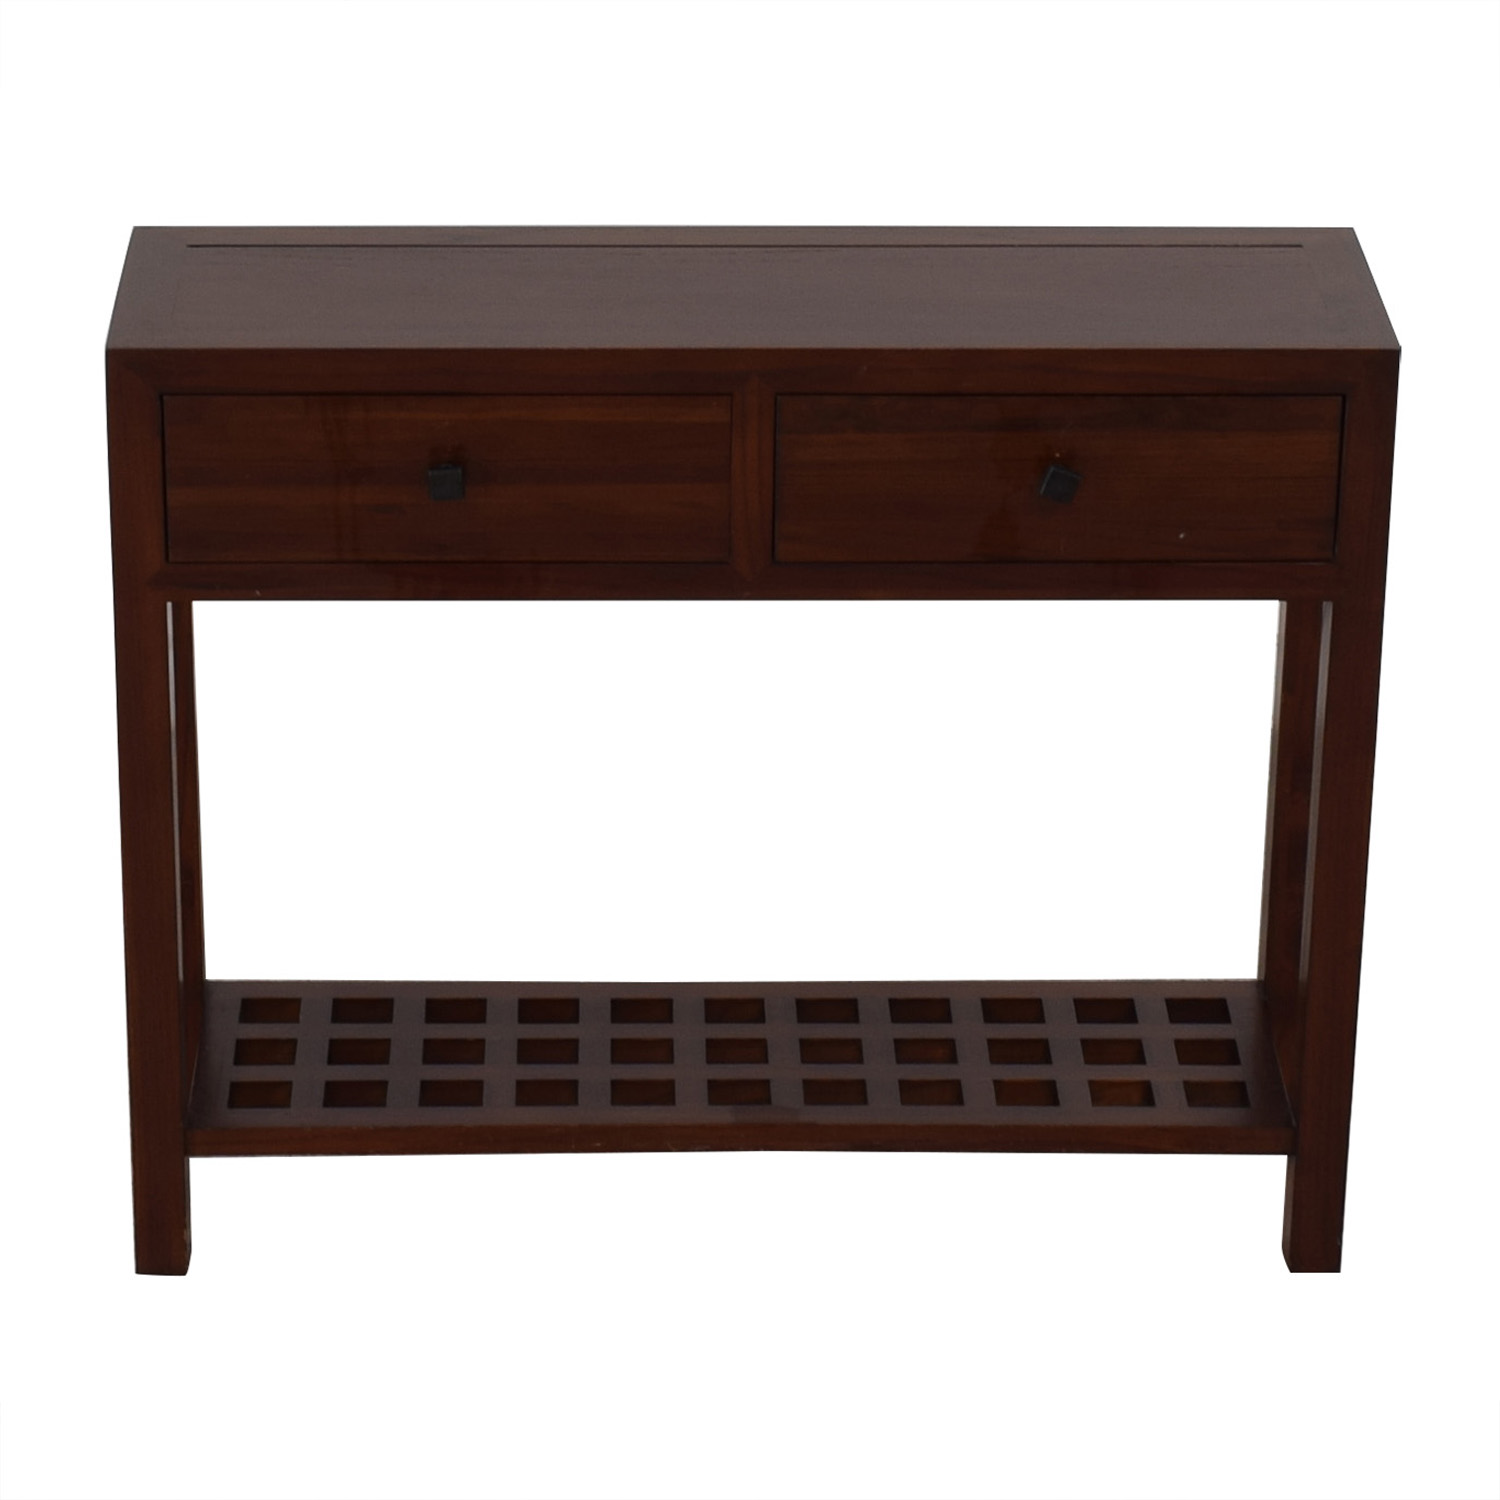 Room & Board Room & Board by Maria Yee Console Table on sale